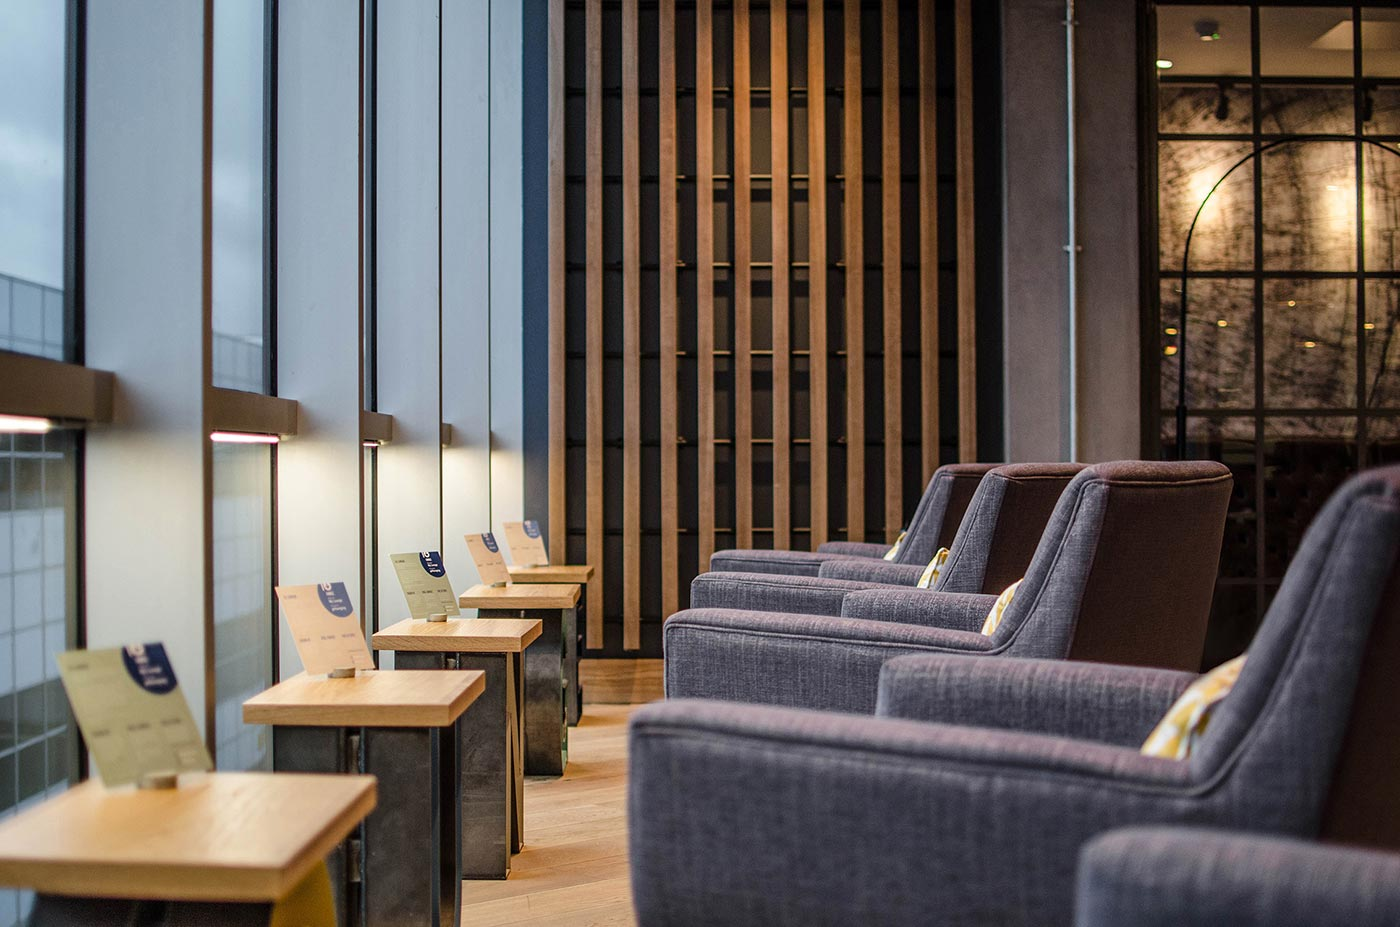 A relaxed seating area in Gatwick Airport's My Lounge